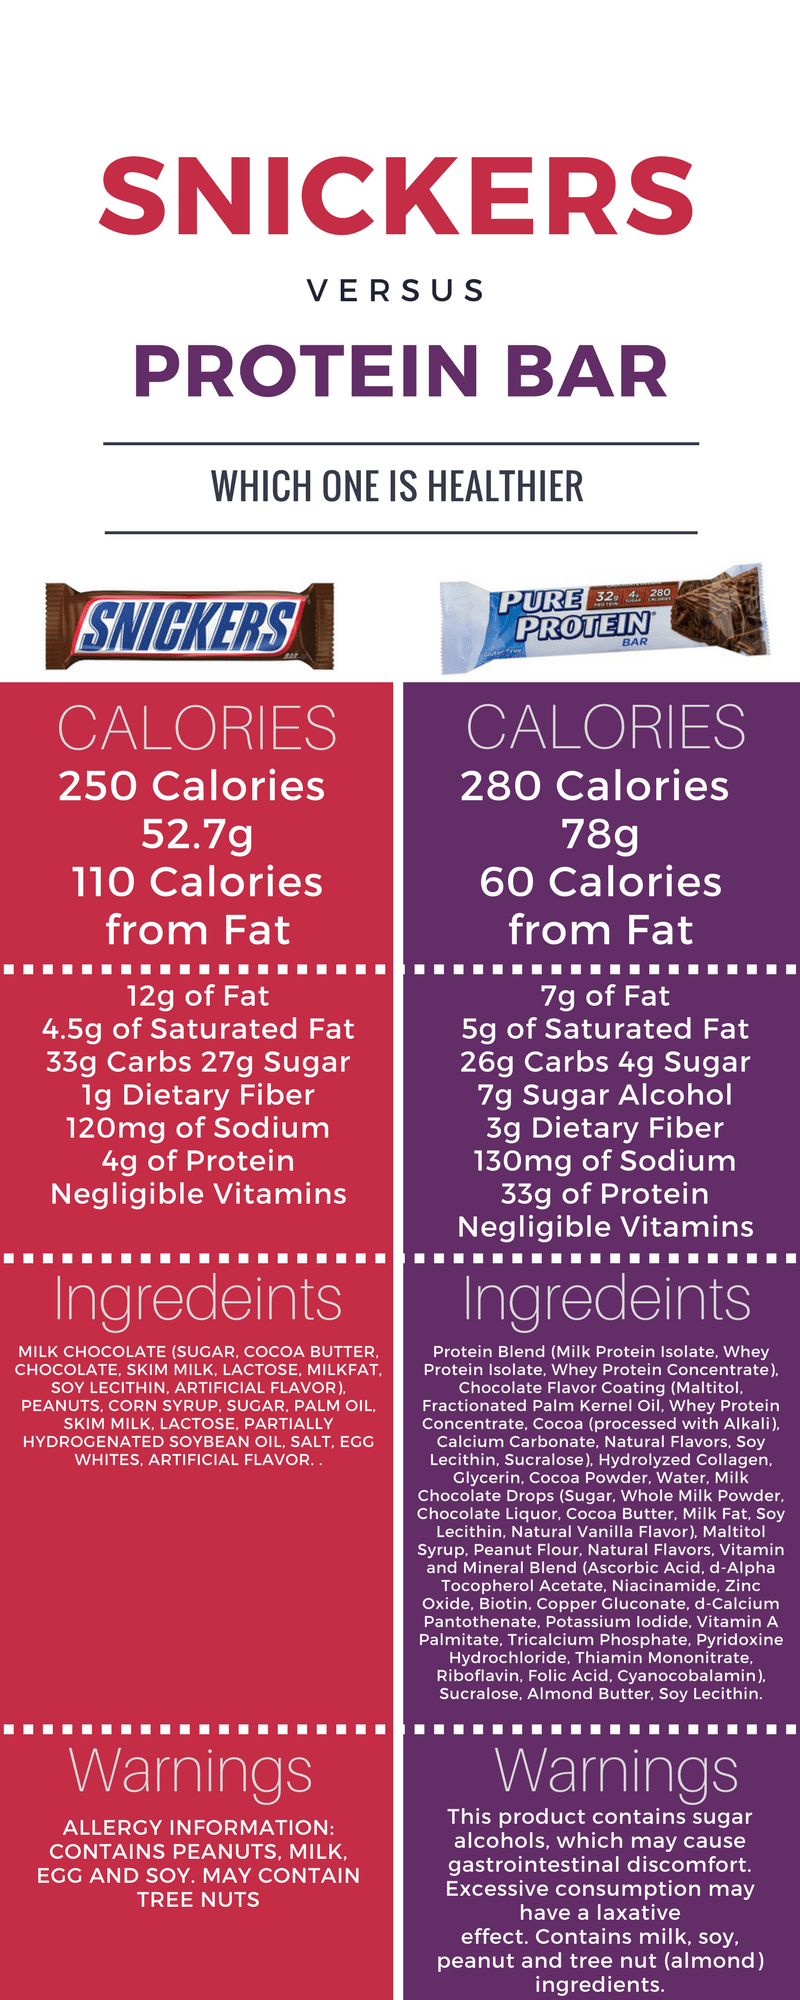 Snickers Bar versus Protein Bar Infographic